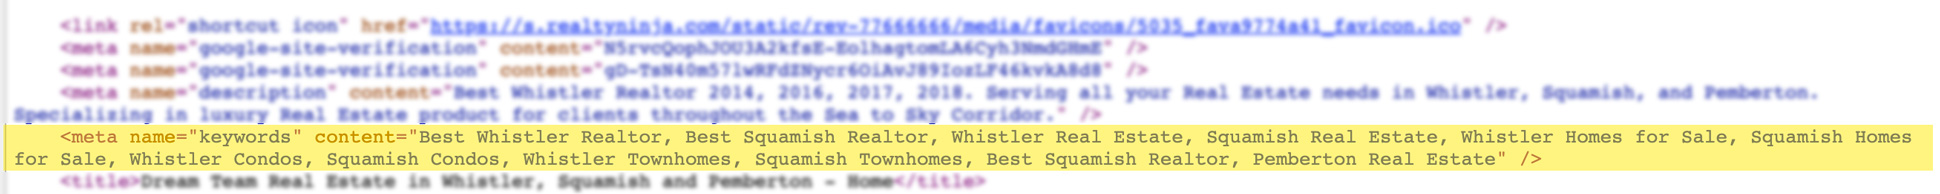 Real Estate Website Meta Tags